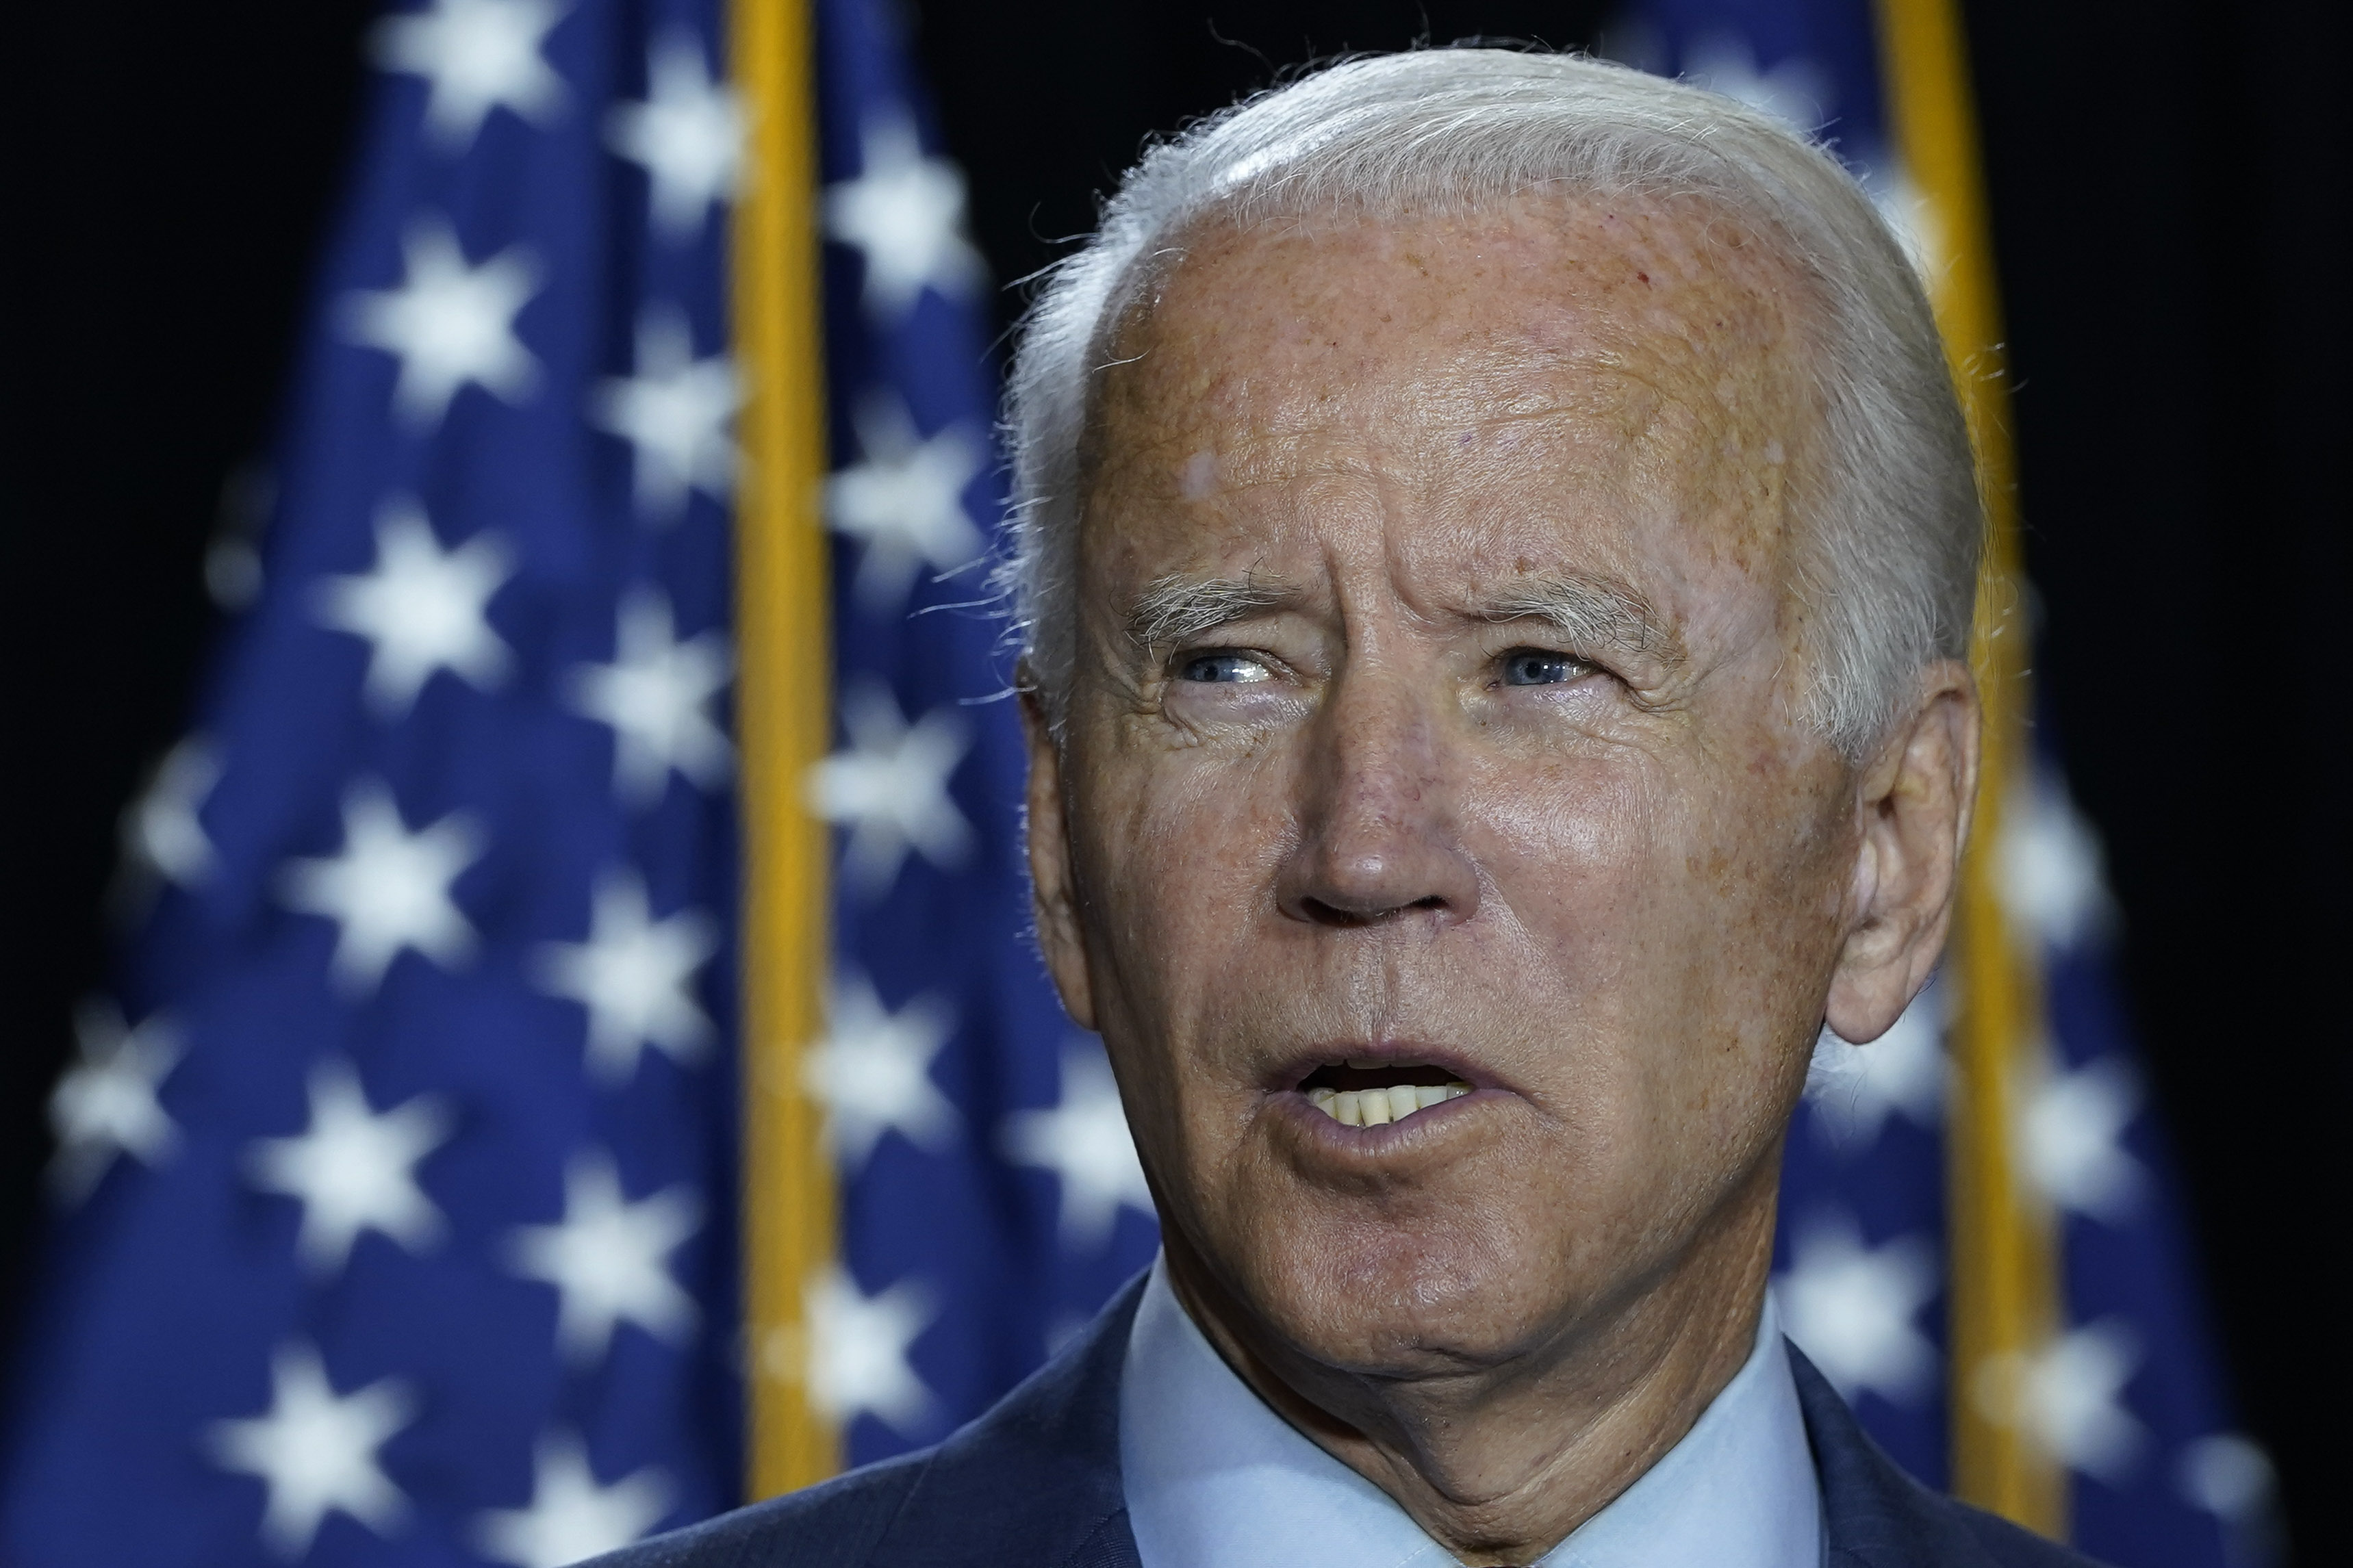 New Fox News poll shows Biden leading Trump in presidential election by 7 points